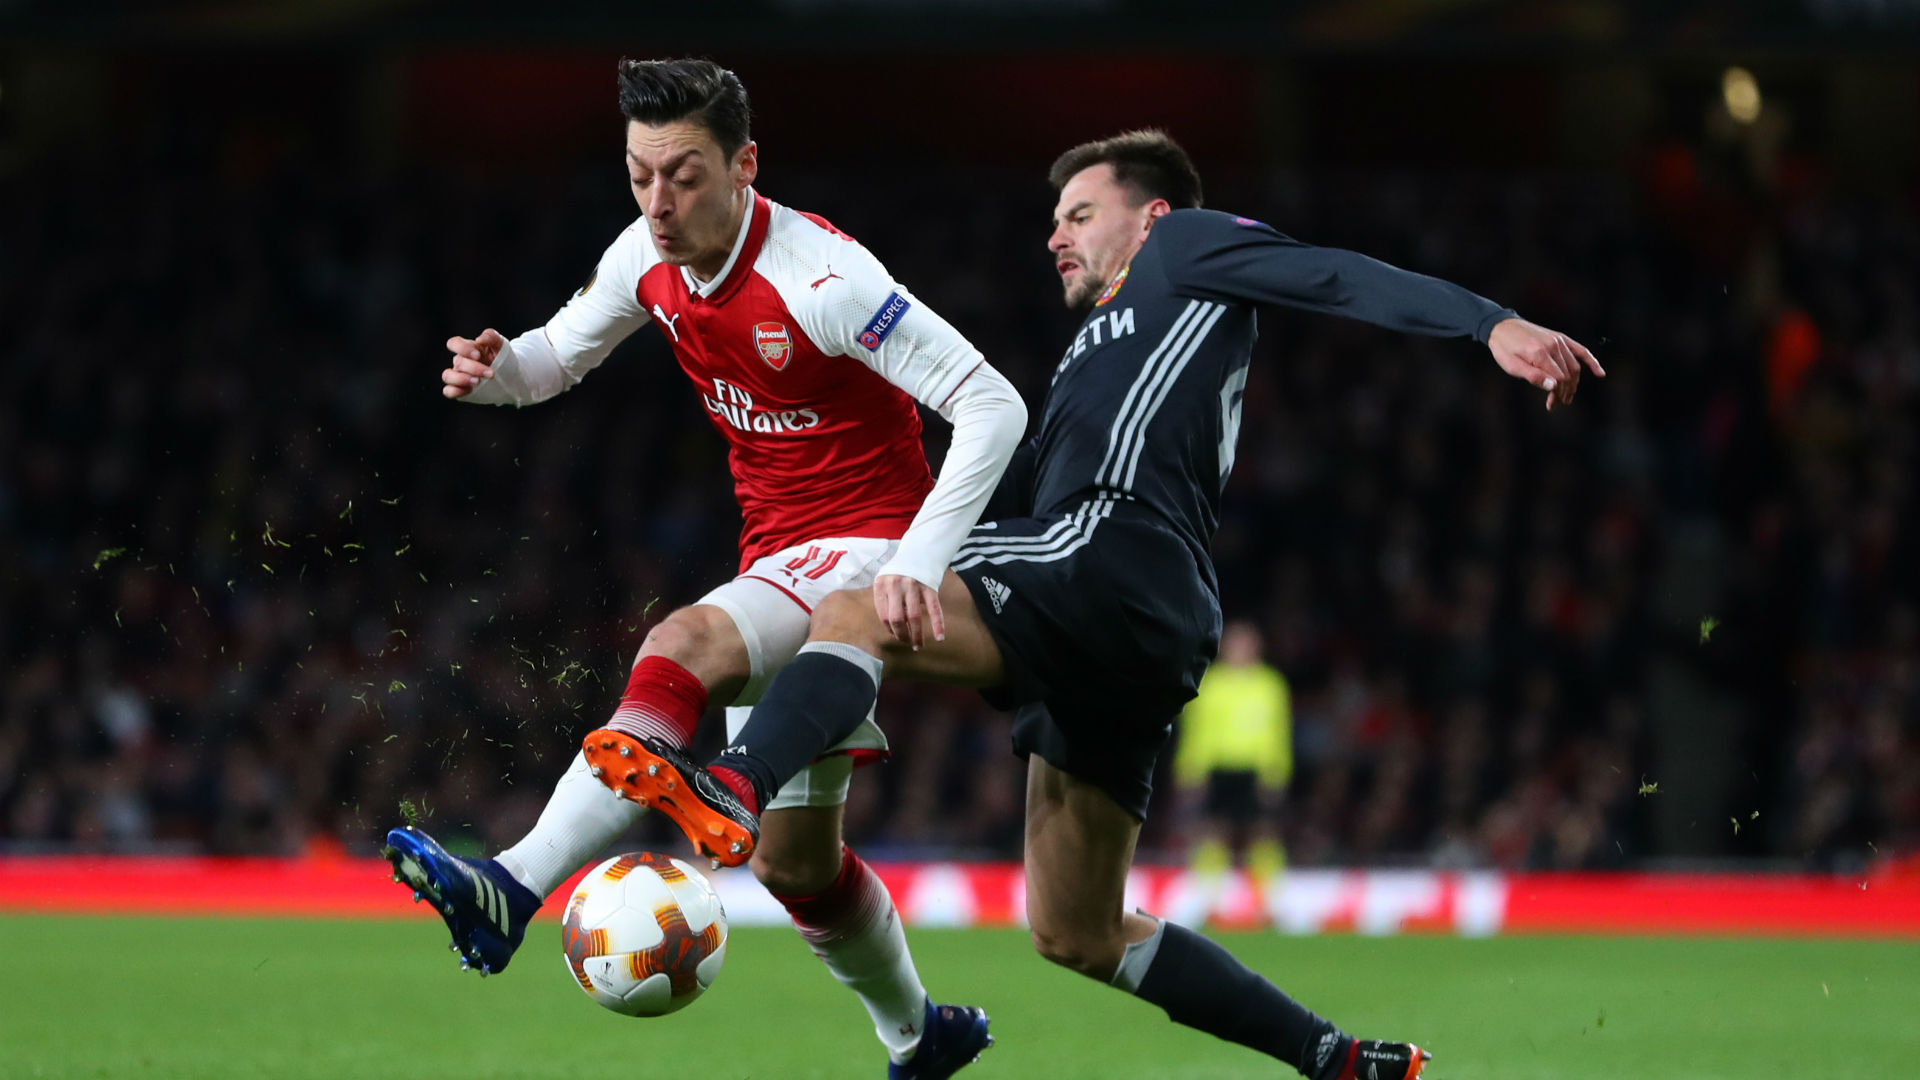 Arsenal can give Mesut Ozil the platform to further improve and deliver as he did against CSKA Moscow at the Emirates, says Per Mertesacker.